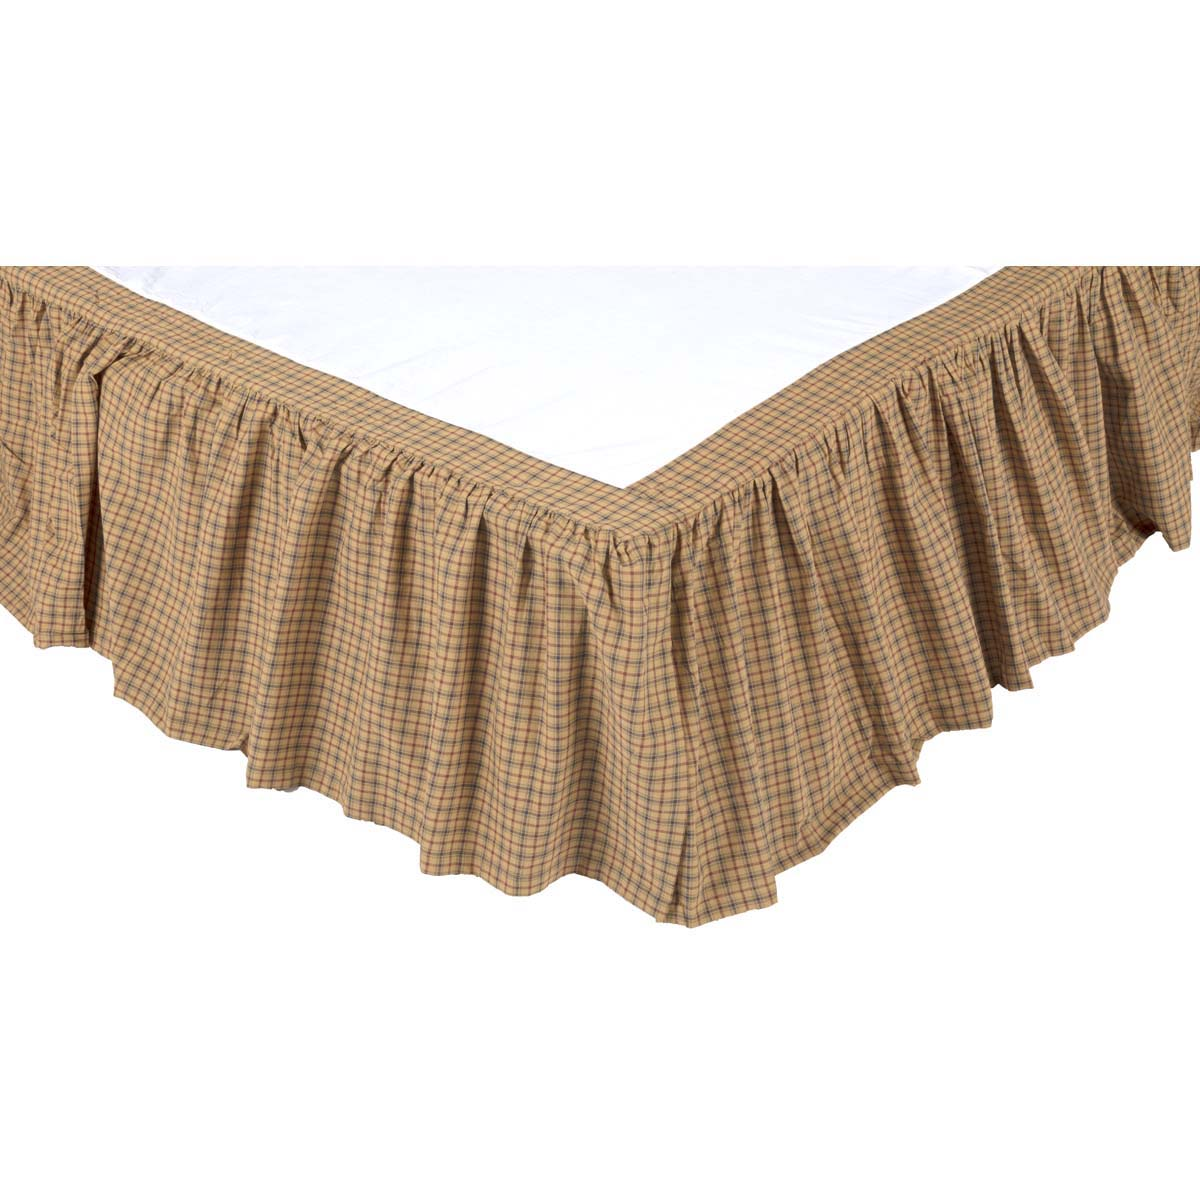 Millsboro King Bed Skirt 78x80x16 - Woodrol